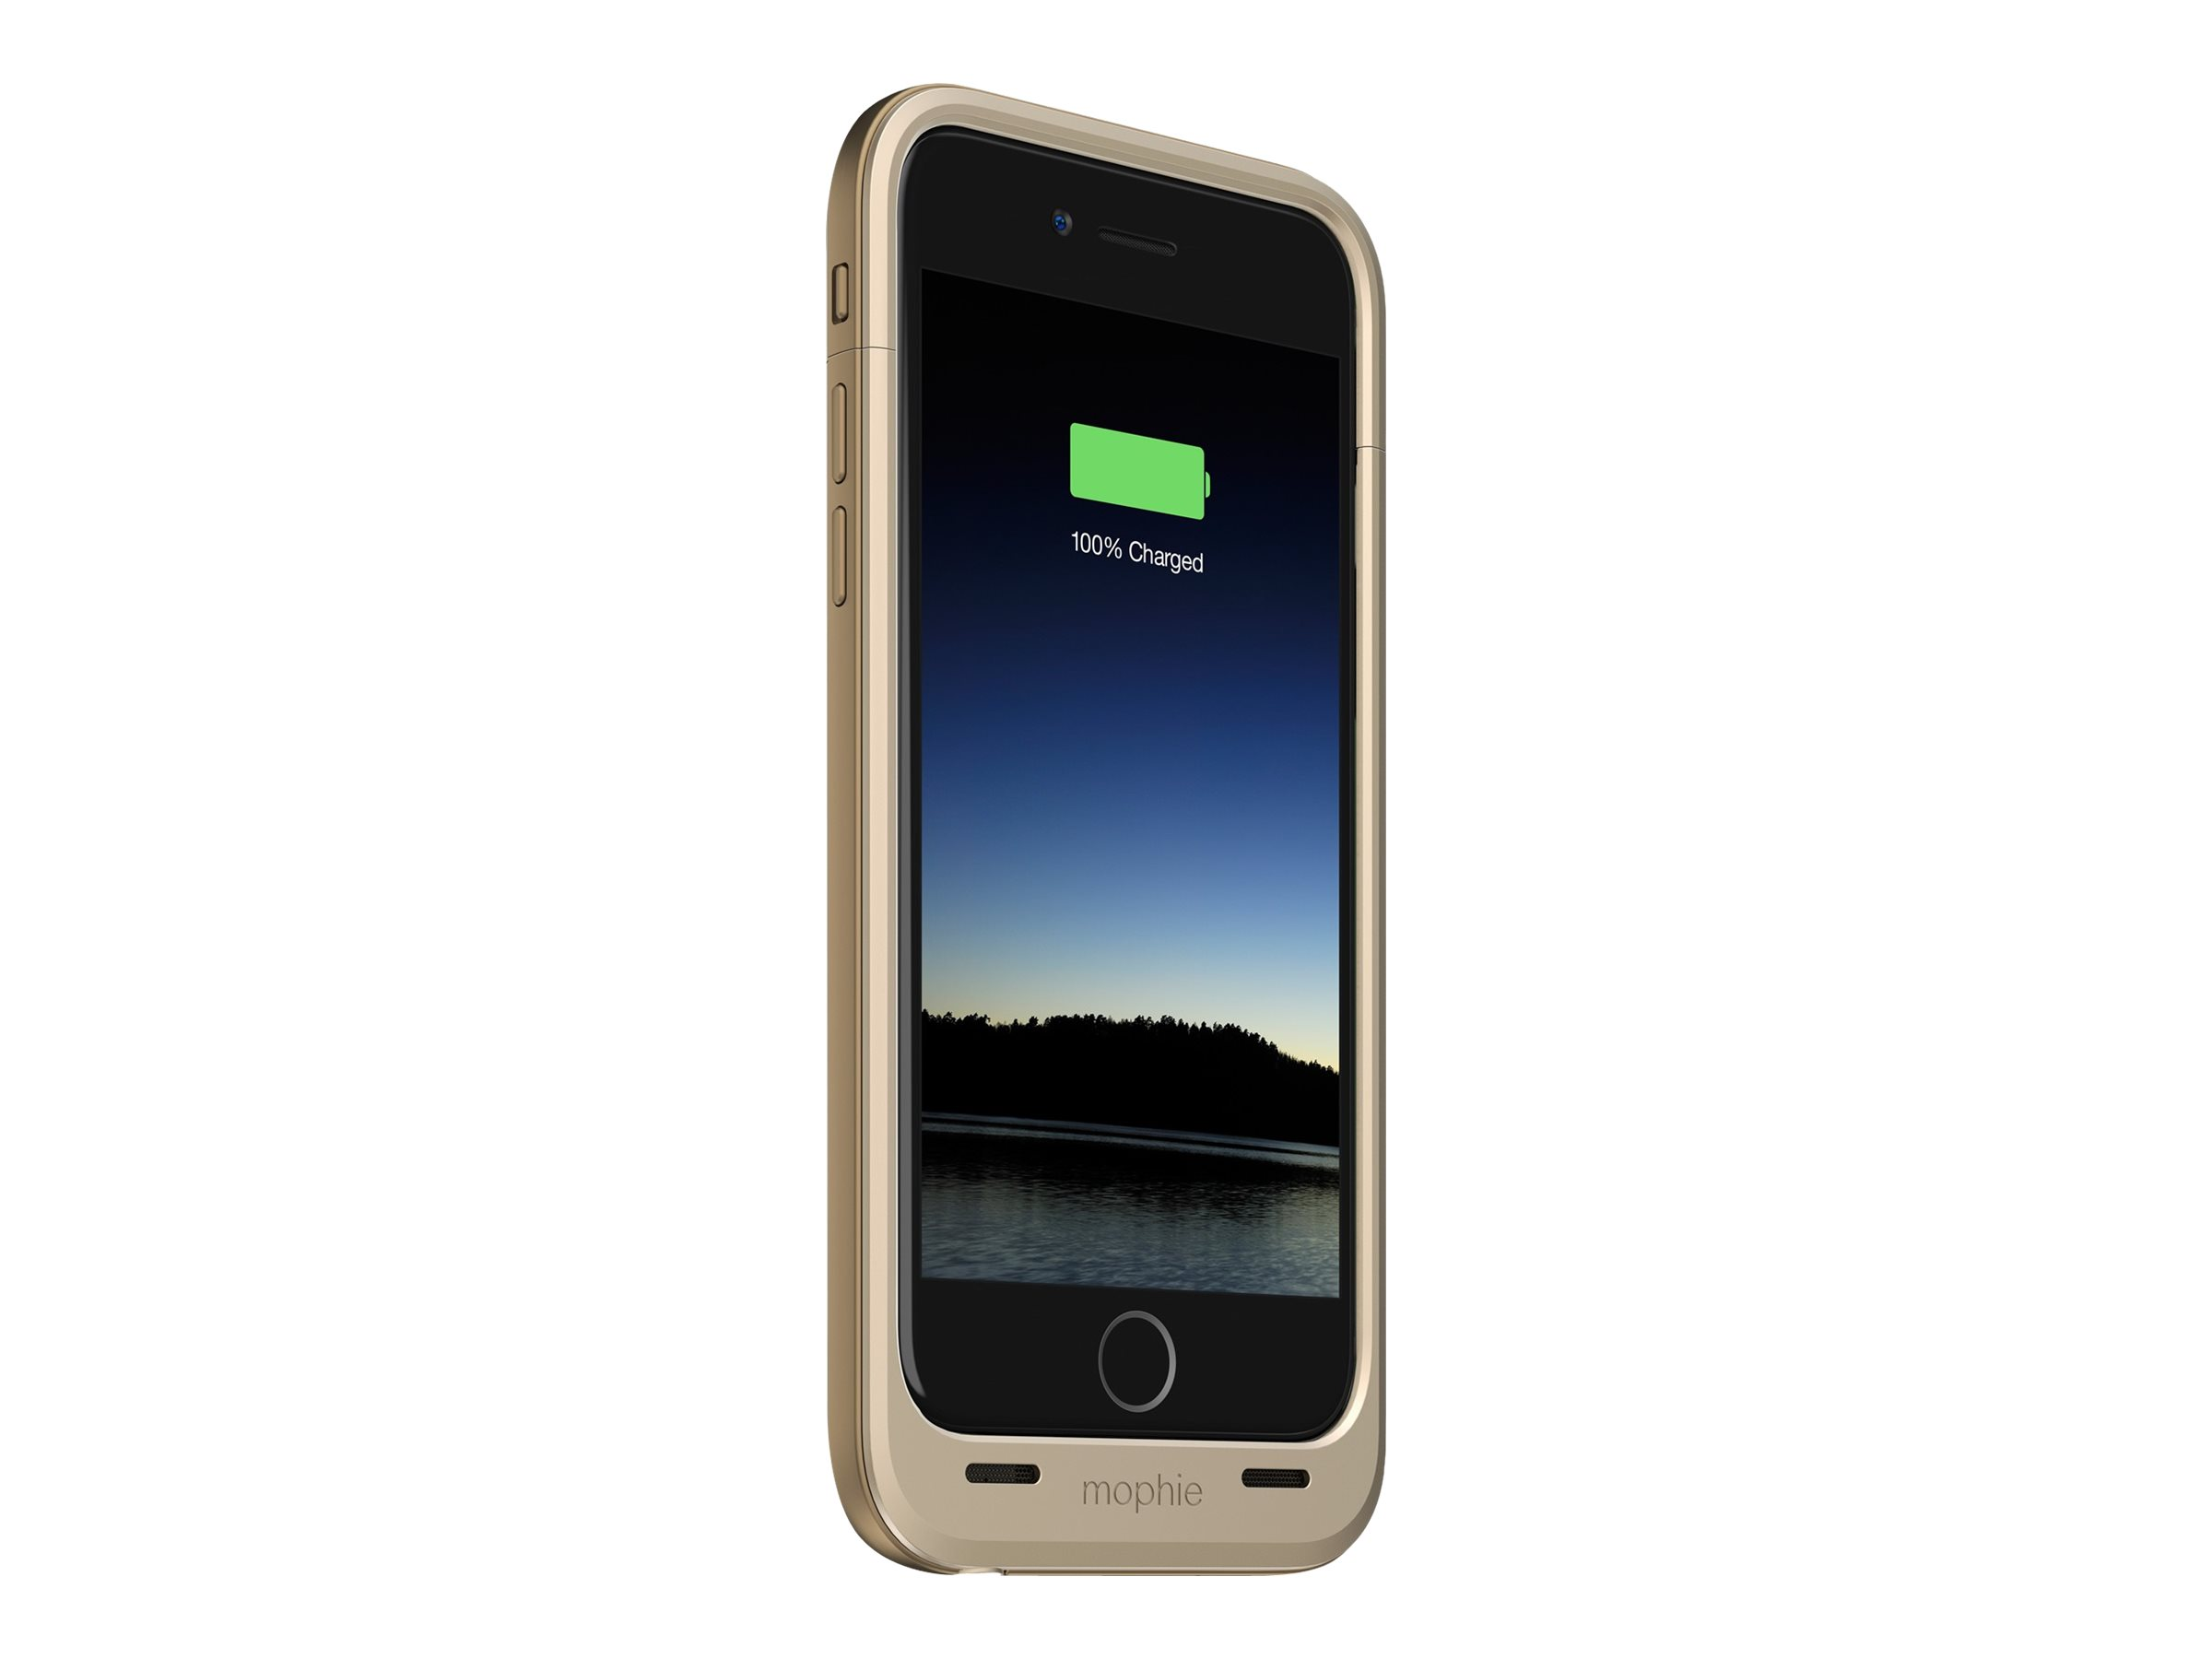 lowest price 864a2 1fcfa Mophie Juice Pack Plus - External battery pack Li-pol 3300 mAh (Lightning)  - on cable: Micro-USB - gold - for Apple iPhone 6